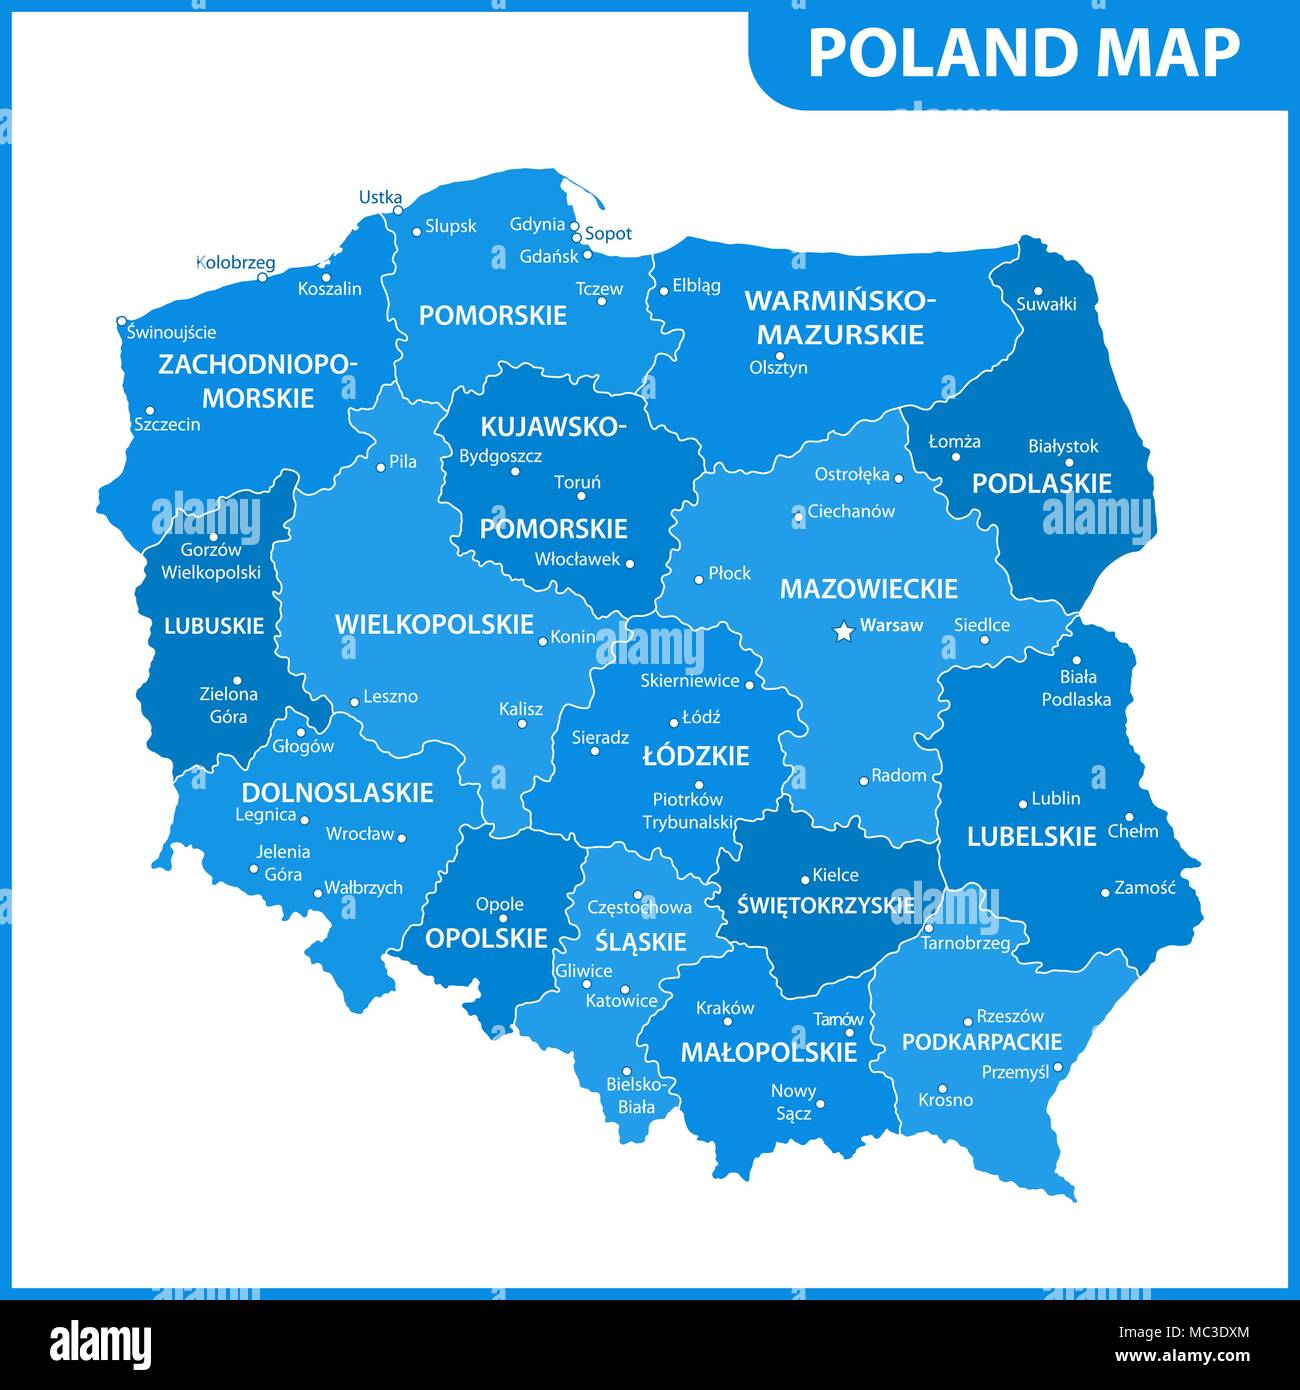 Poland Map Regions Stock Photos Poland Map Regions Stock Images